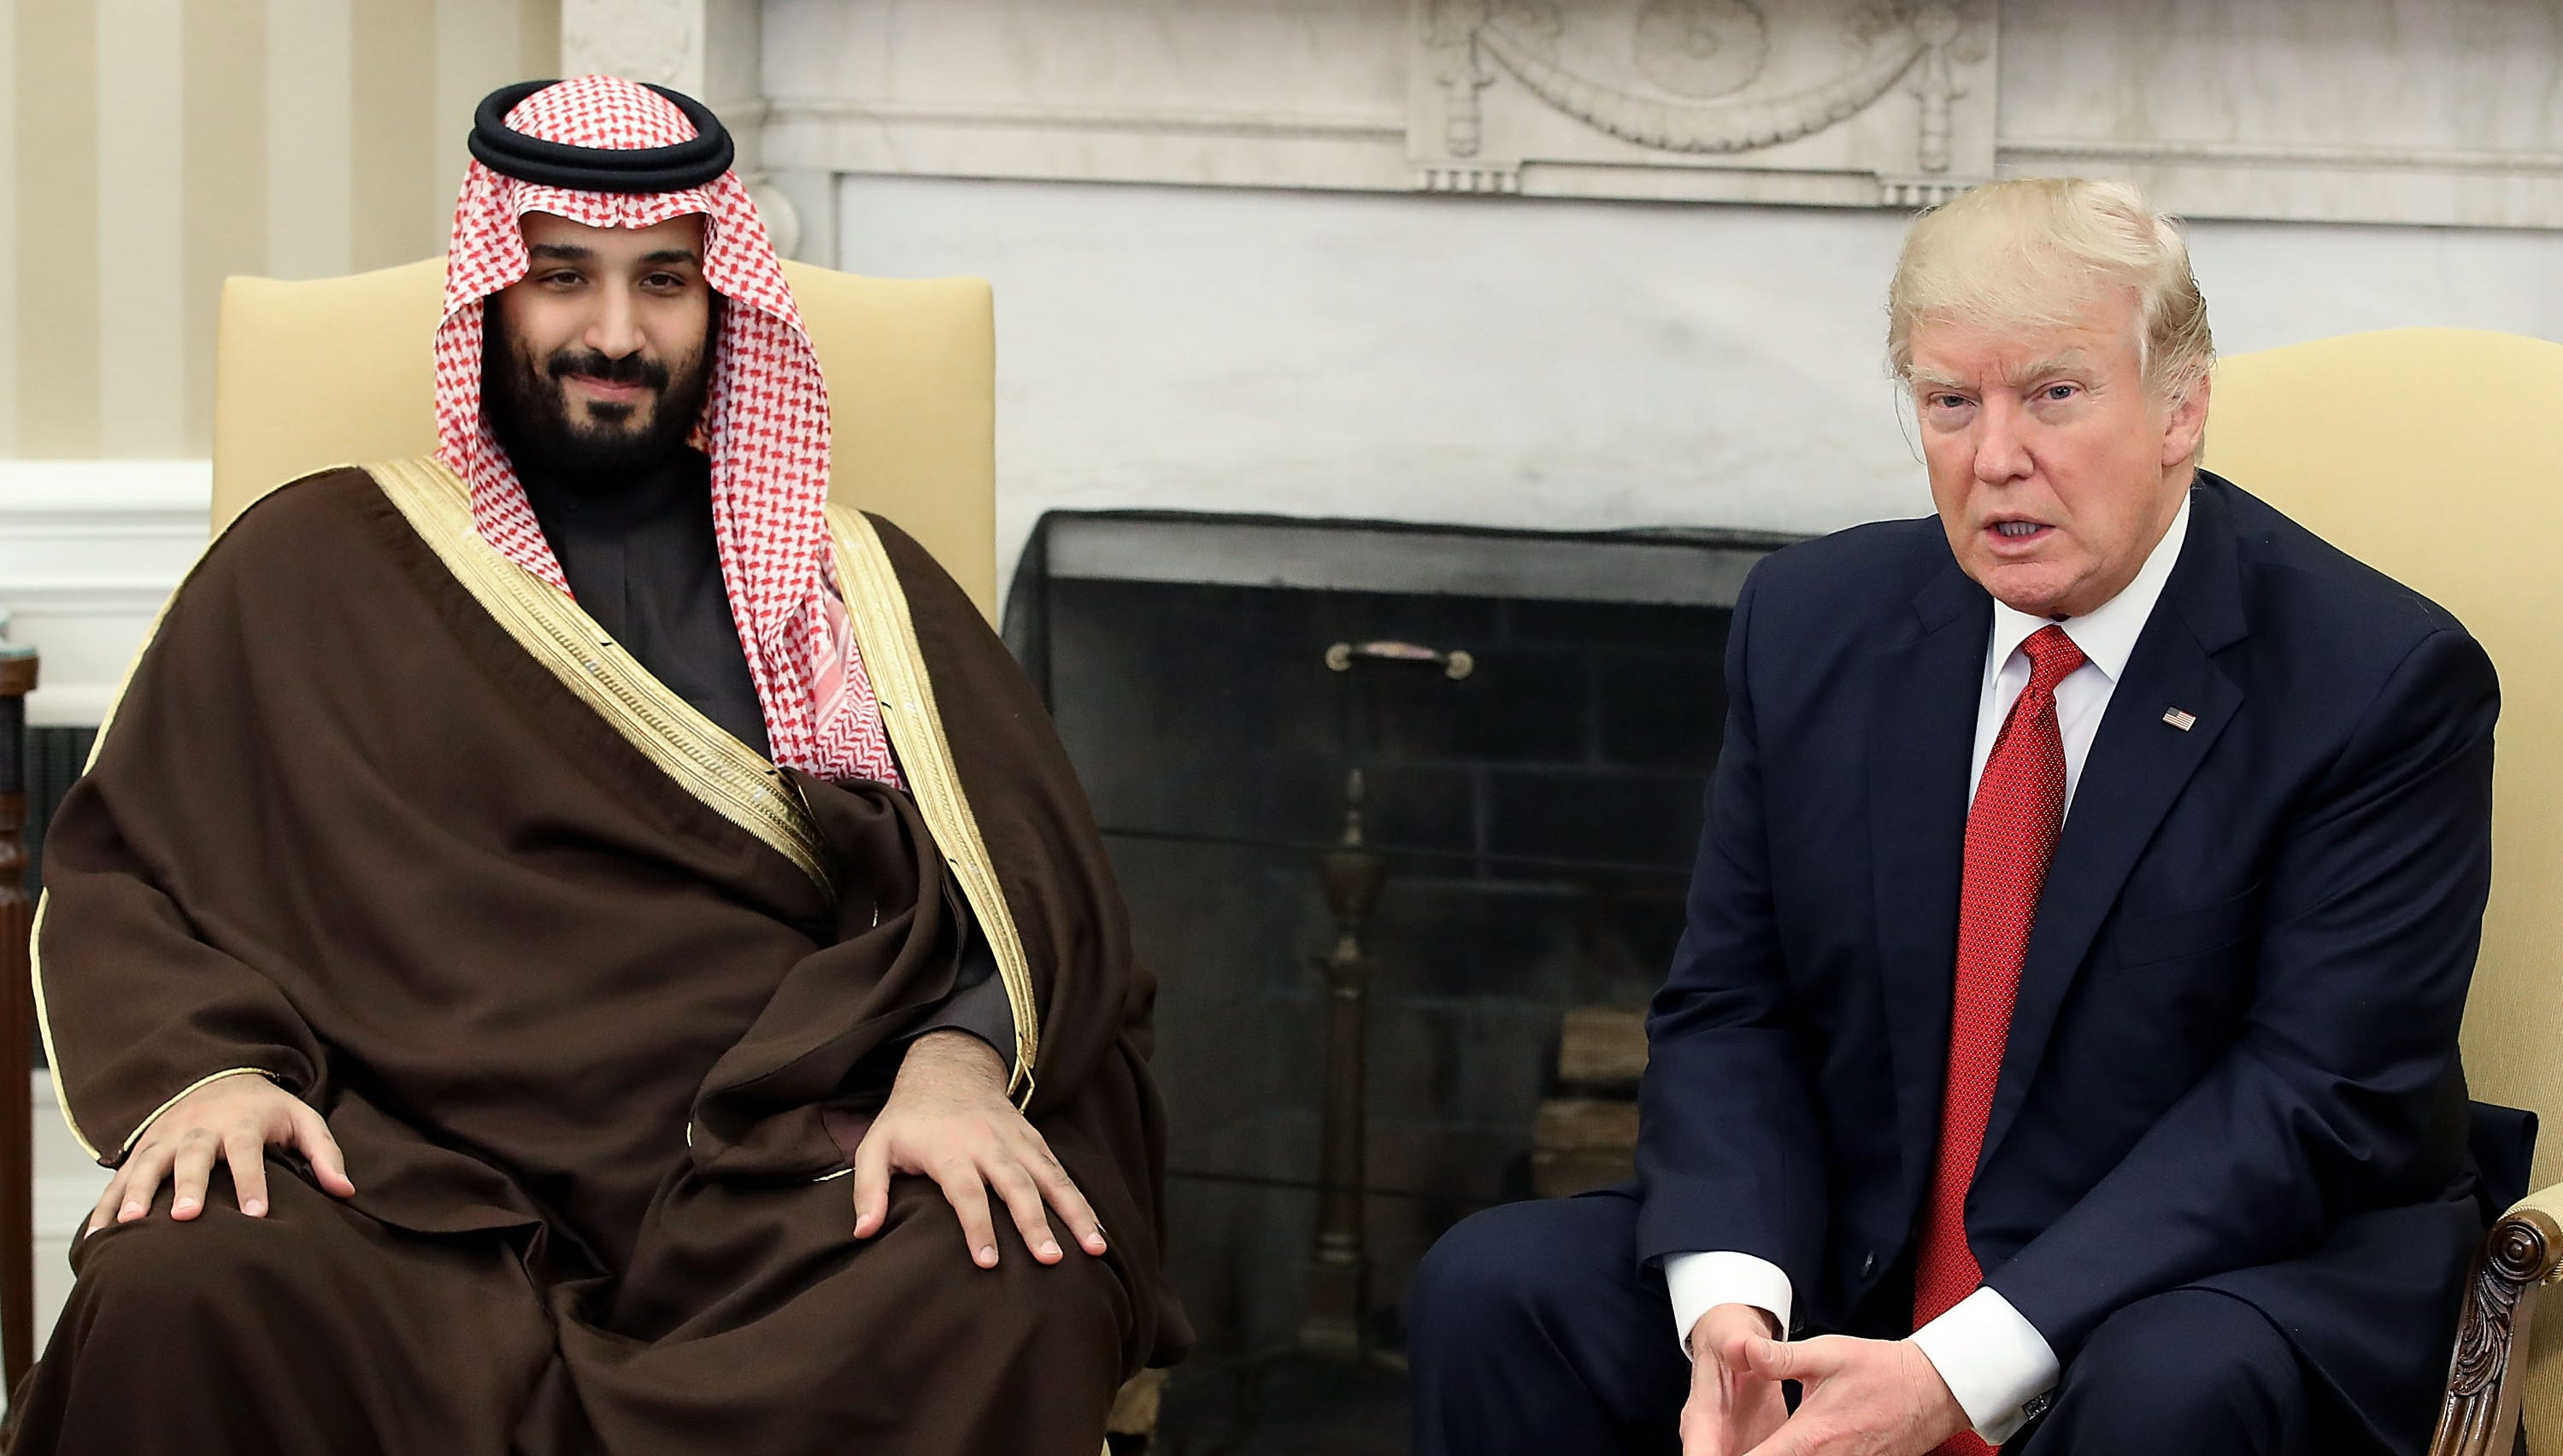 Saudi Crown Prince Mohammed bin Salman and President Donald Trump in Washington on March 14, 2017.